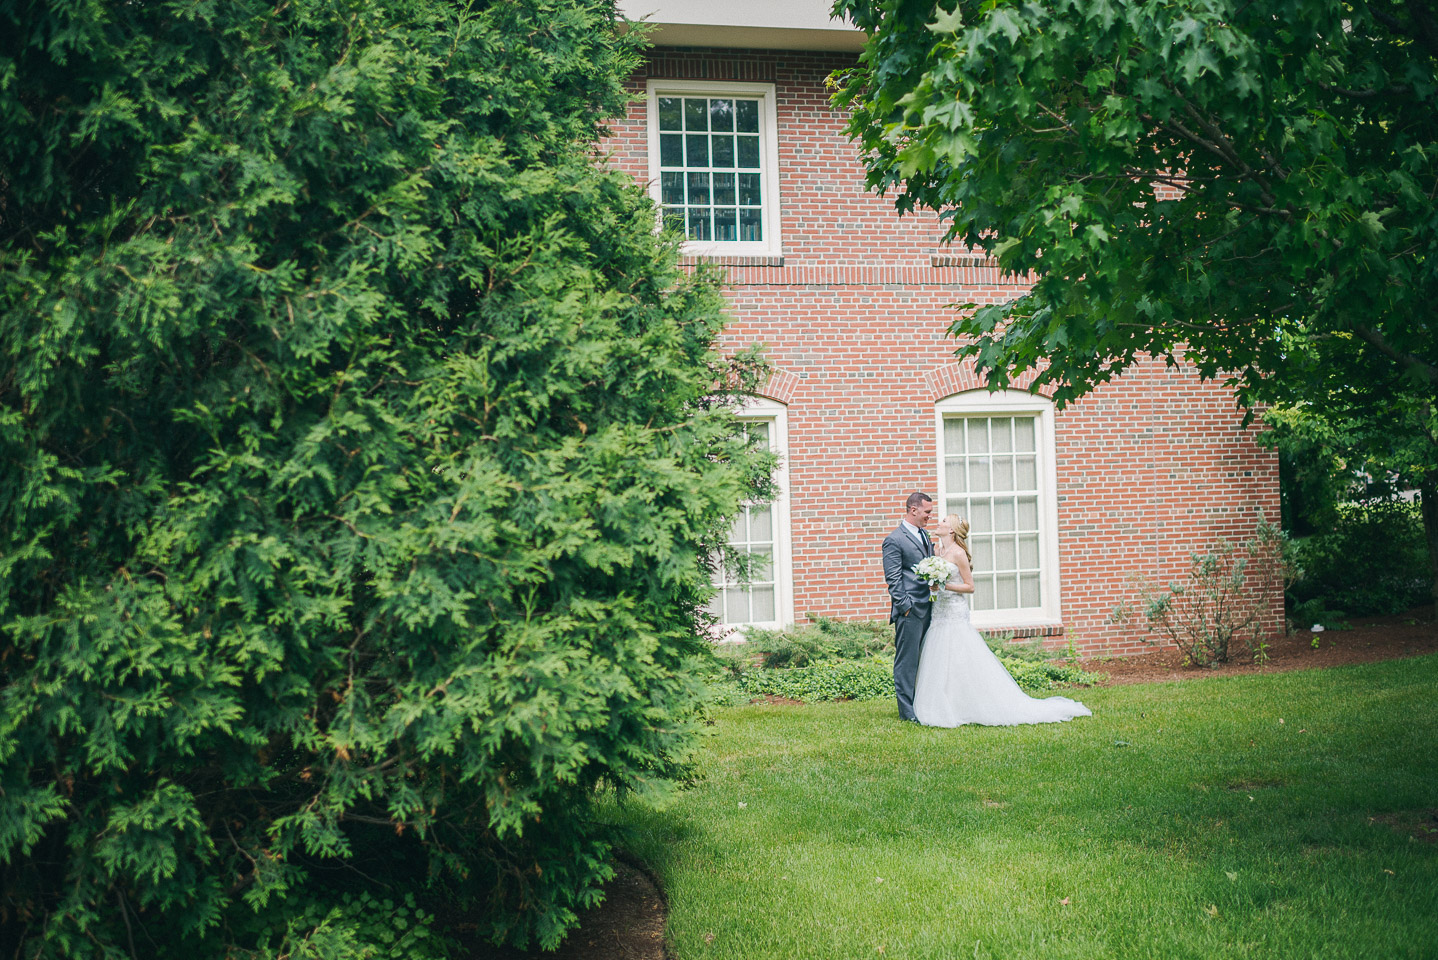 NH Wedding Photographer: couple in garden against old brick